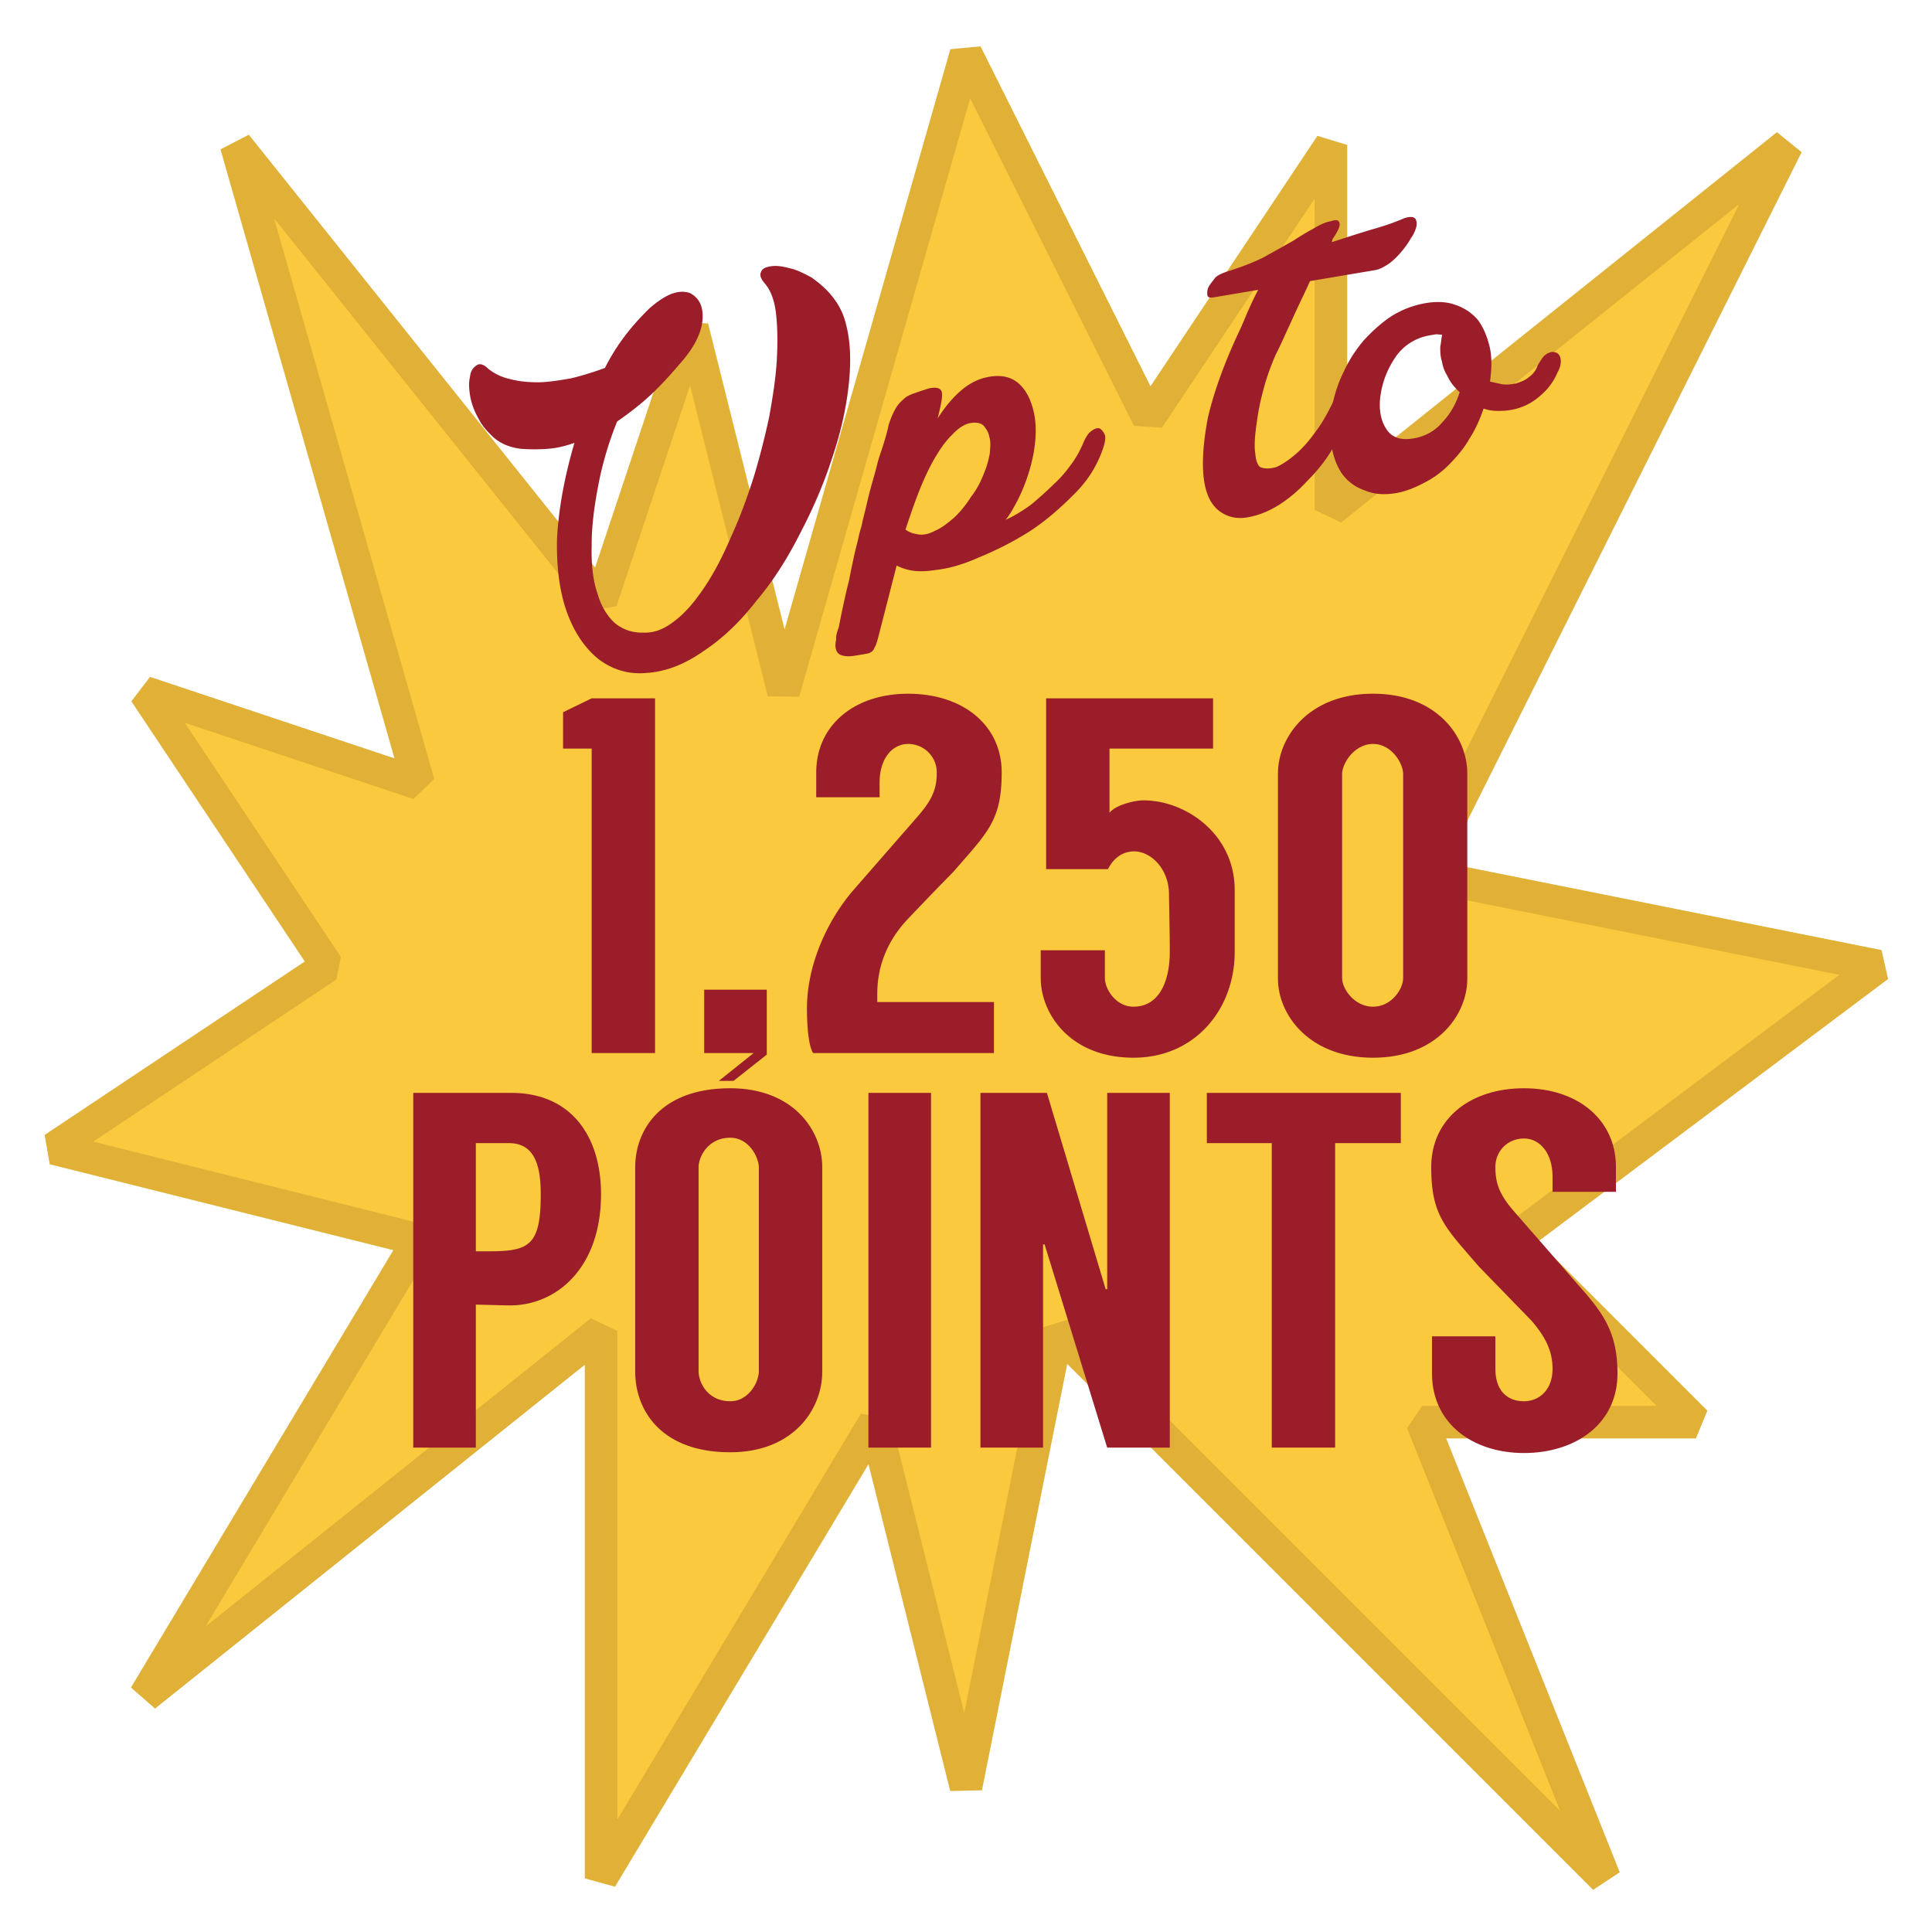 At Quest Scouts, our Scouts complete quests through earning points. Some of our scouts enjoy collecting as many points as possible! Concentration is available for a limited time, so be sure to grab as many of these 1,250 points while you can!